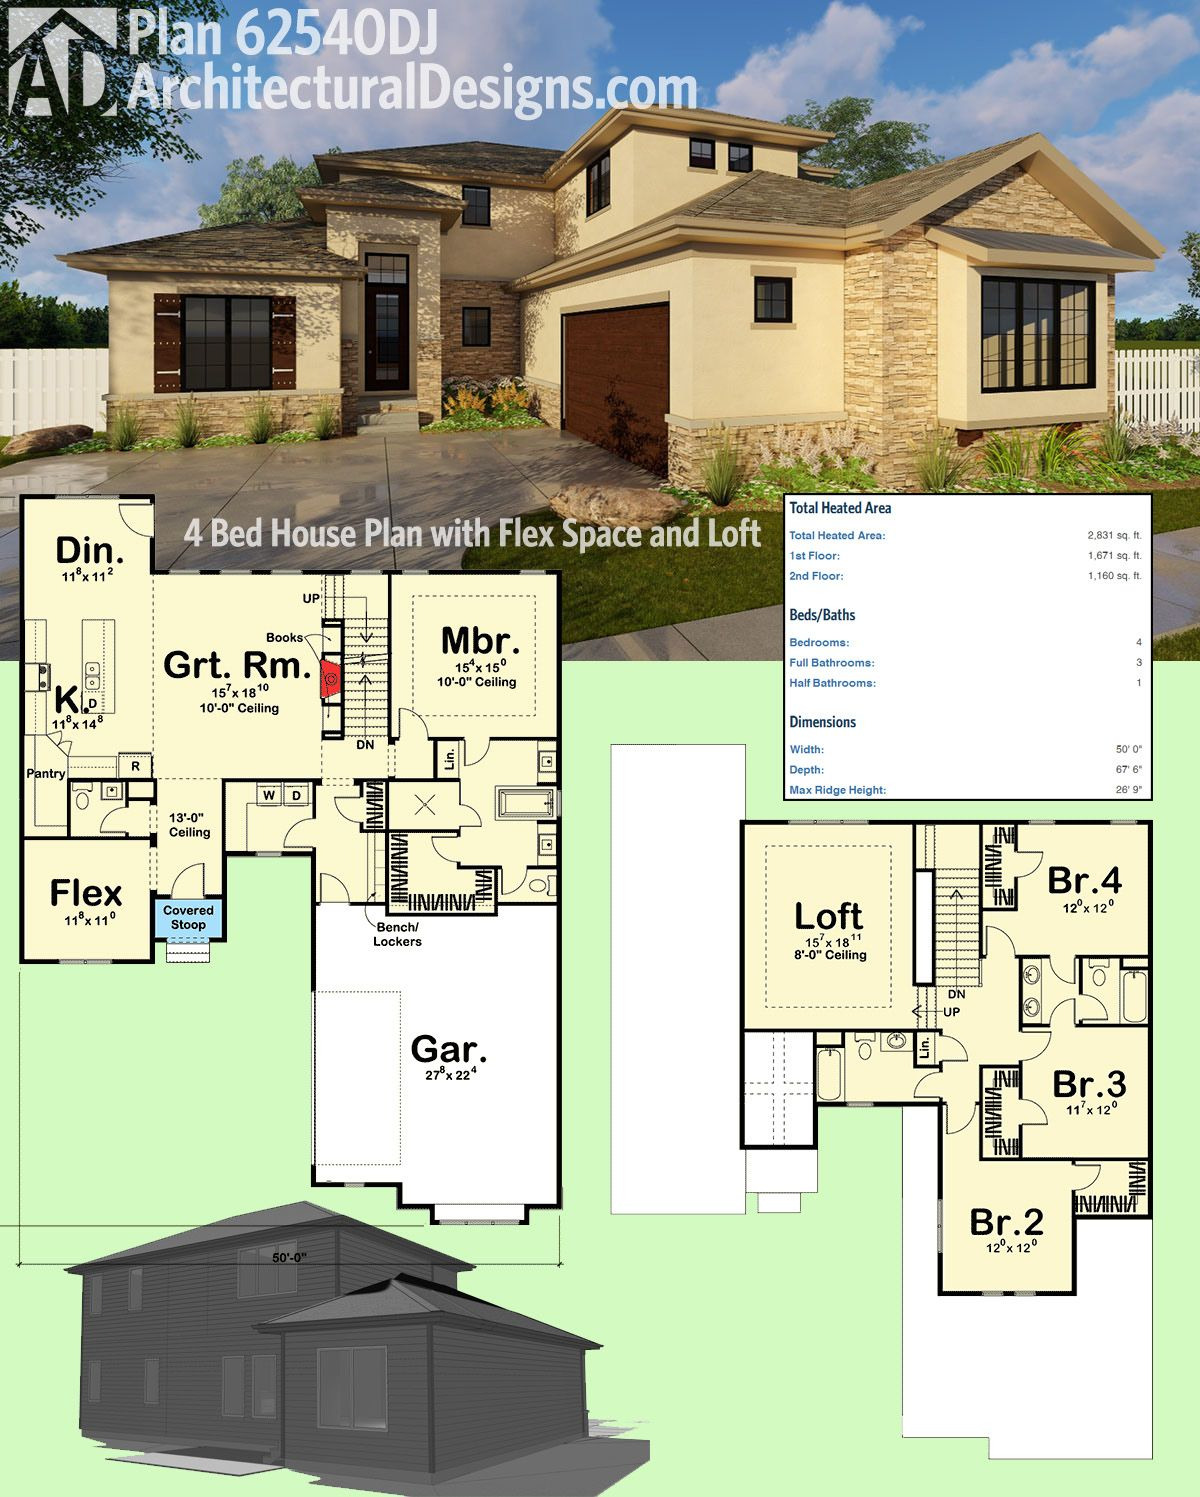 House Plans for Additions Beautiful Plan Dj 4 Bed House Plan with Flex Space and Loft